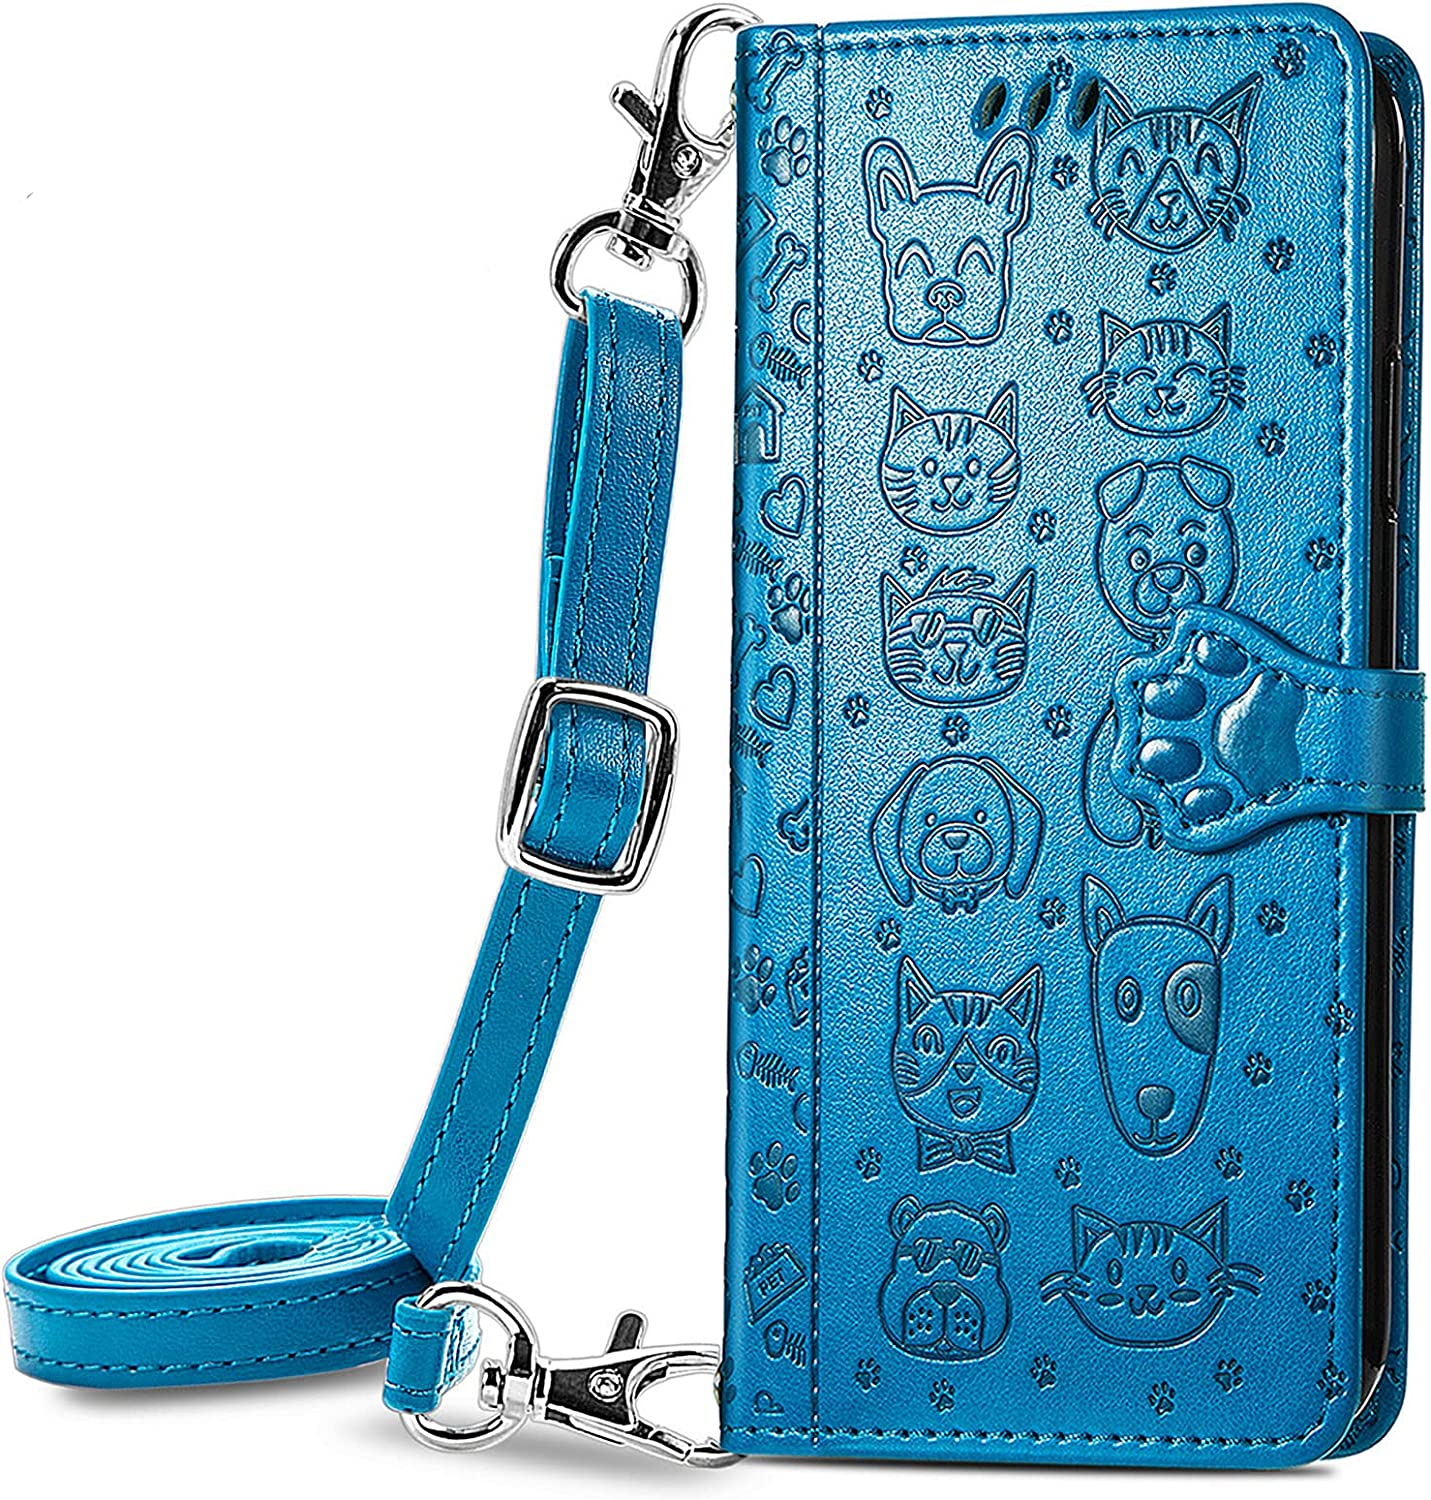 DAMONDY for Galaxy Z Fold 3 Case,3D Cartoon Leather Wallet Case with Lanyard Strap Designs for Girls Women,with Kickstand Card Slots Cover Phone Case for Samsung Galaxy Z Fold 3 5G -Blue